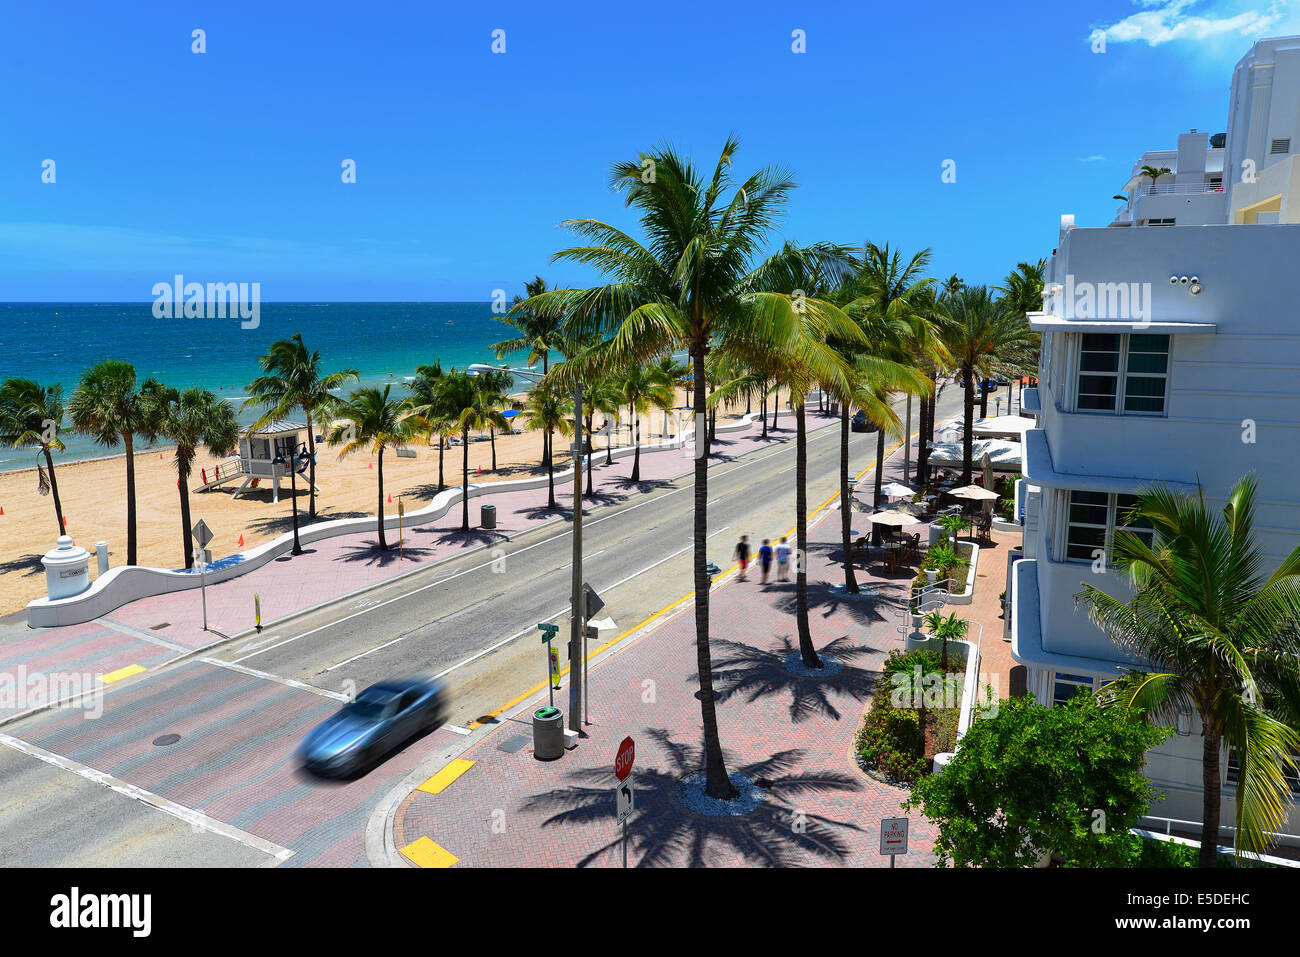 Sunrise Beach in Ft.Lauderdale with palm trees and beach entry feature. Stock Photo